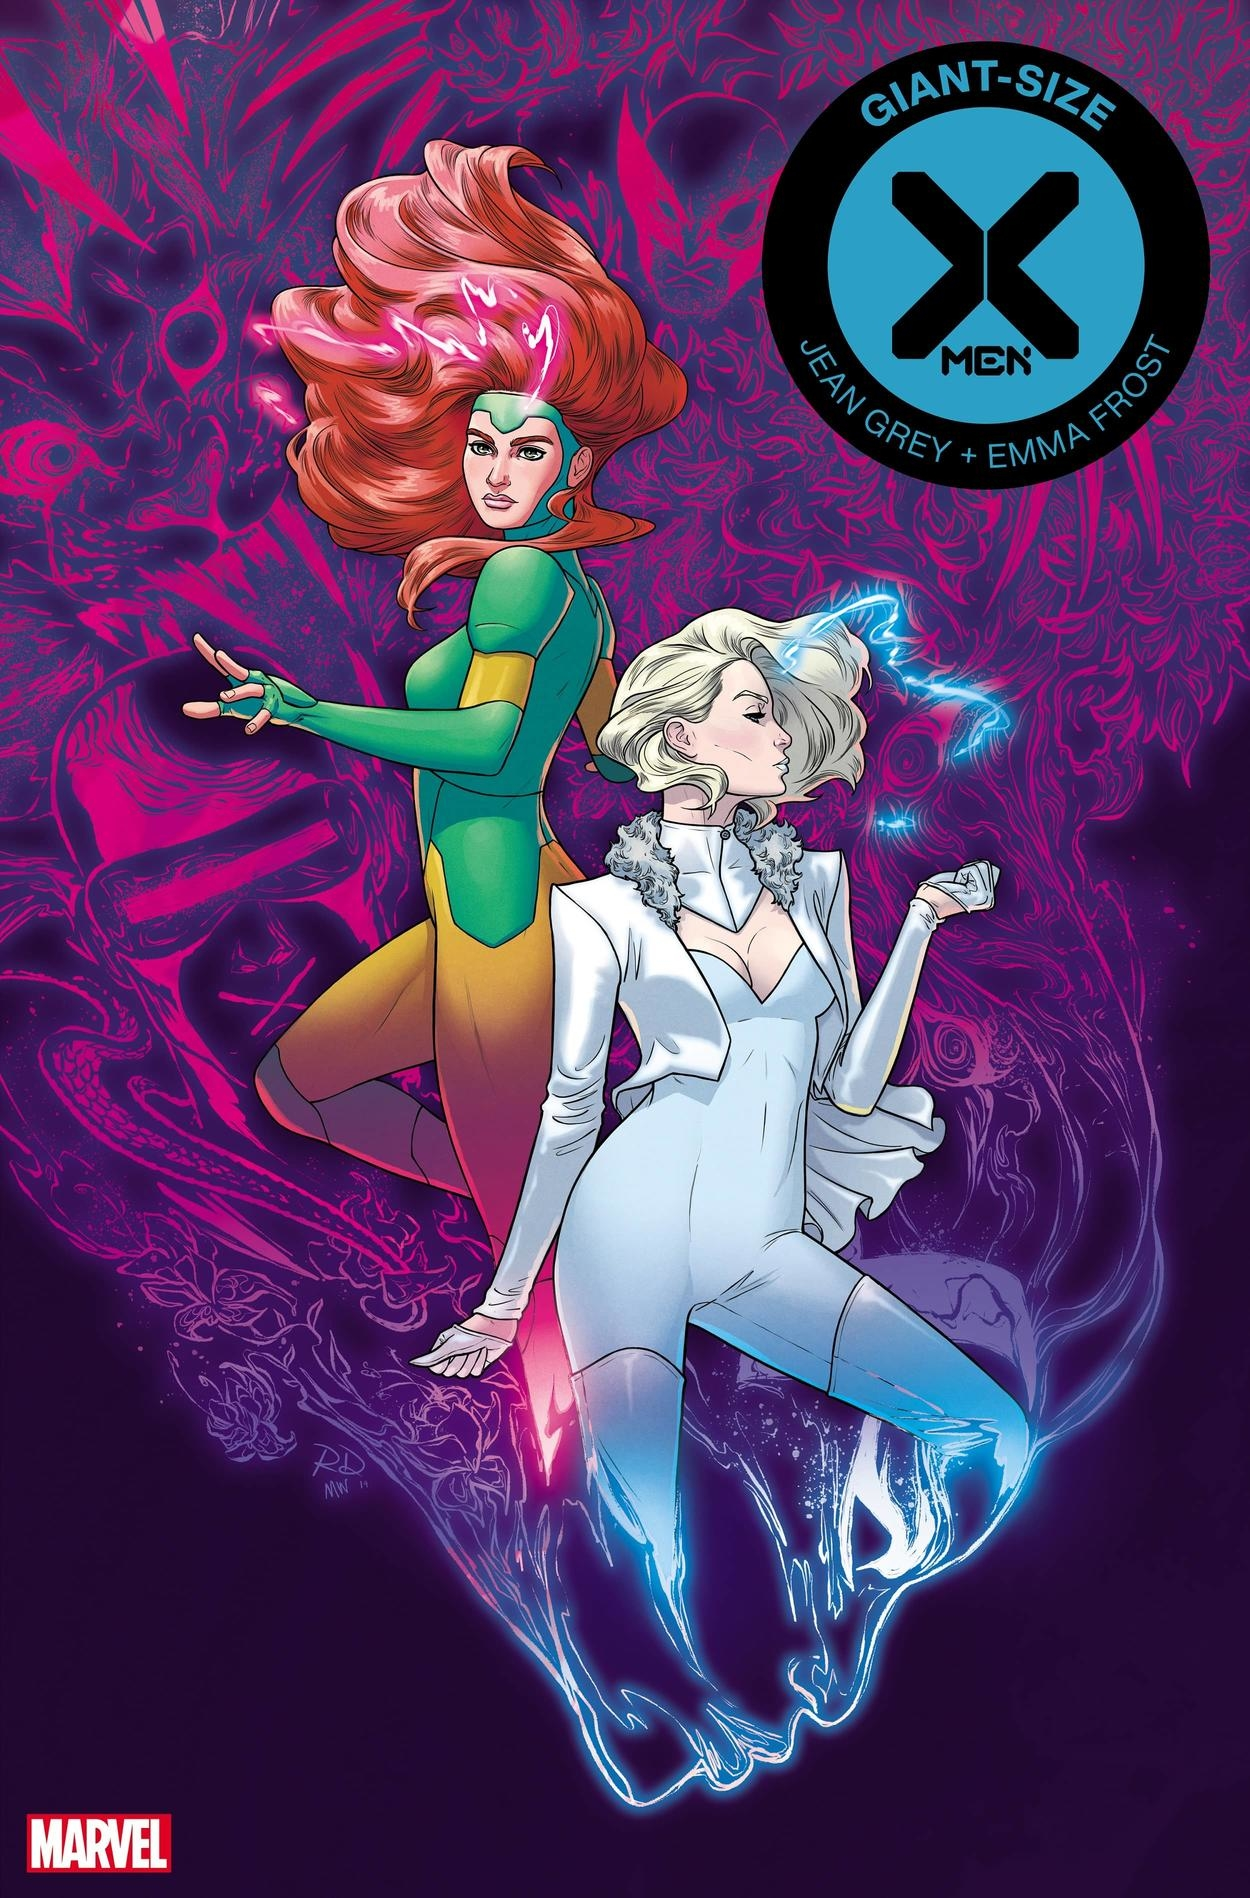 Image result for giant sized x men jean grey and emma frost